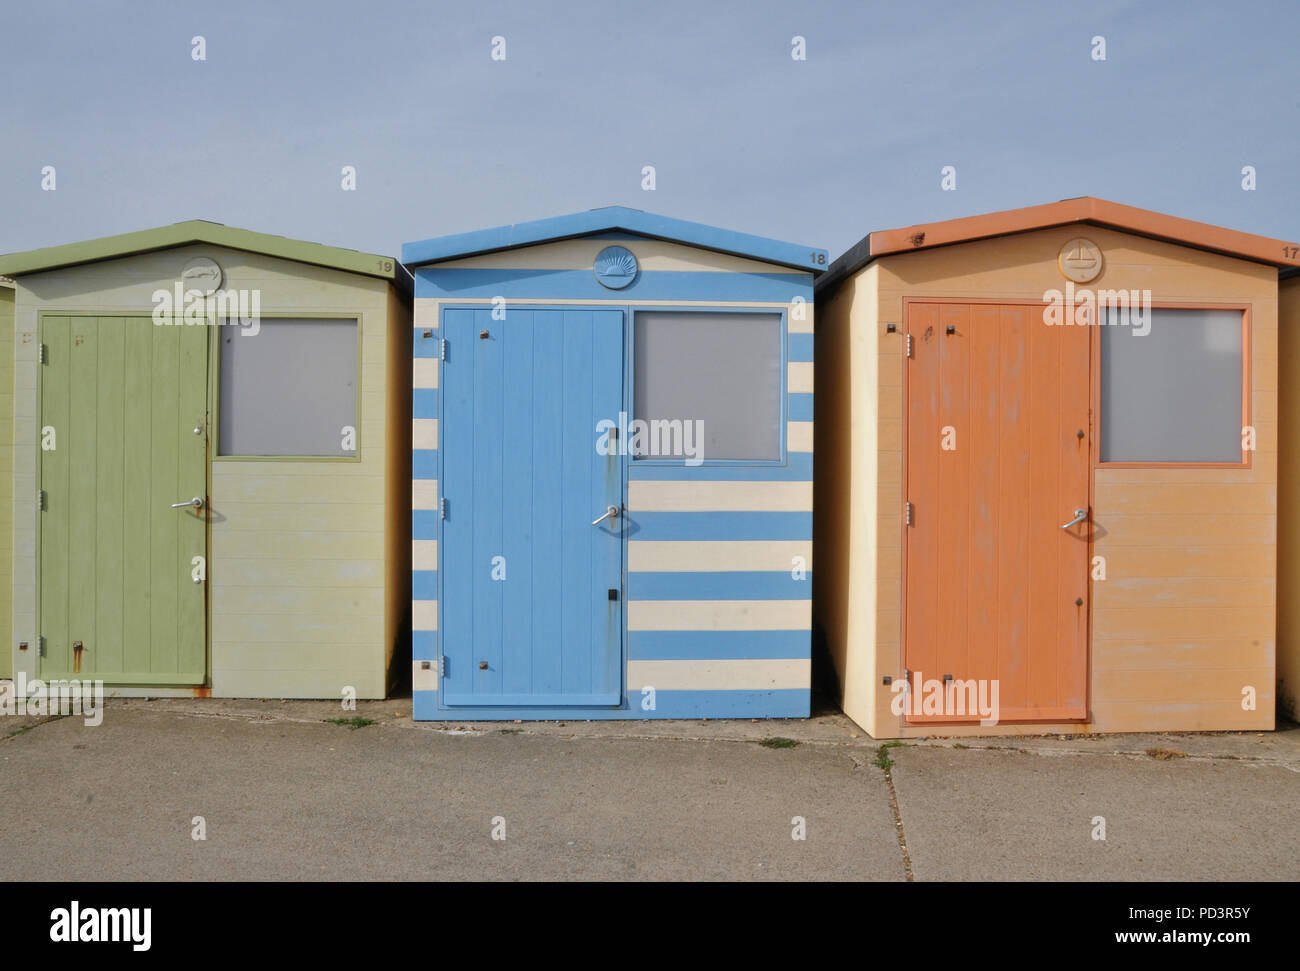 Beach huts on the Sussex coast, Seaford, East Sussex, UK. - Stock Image